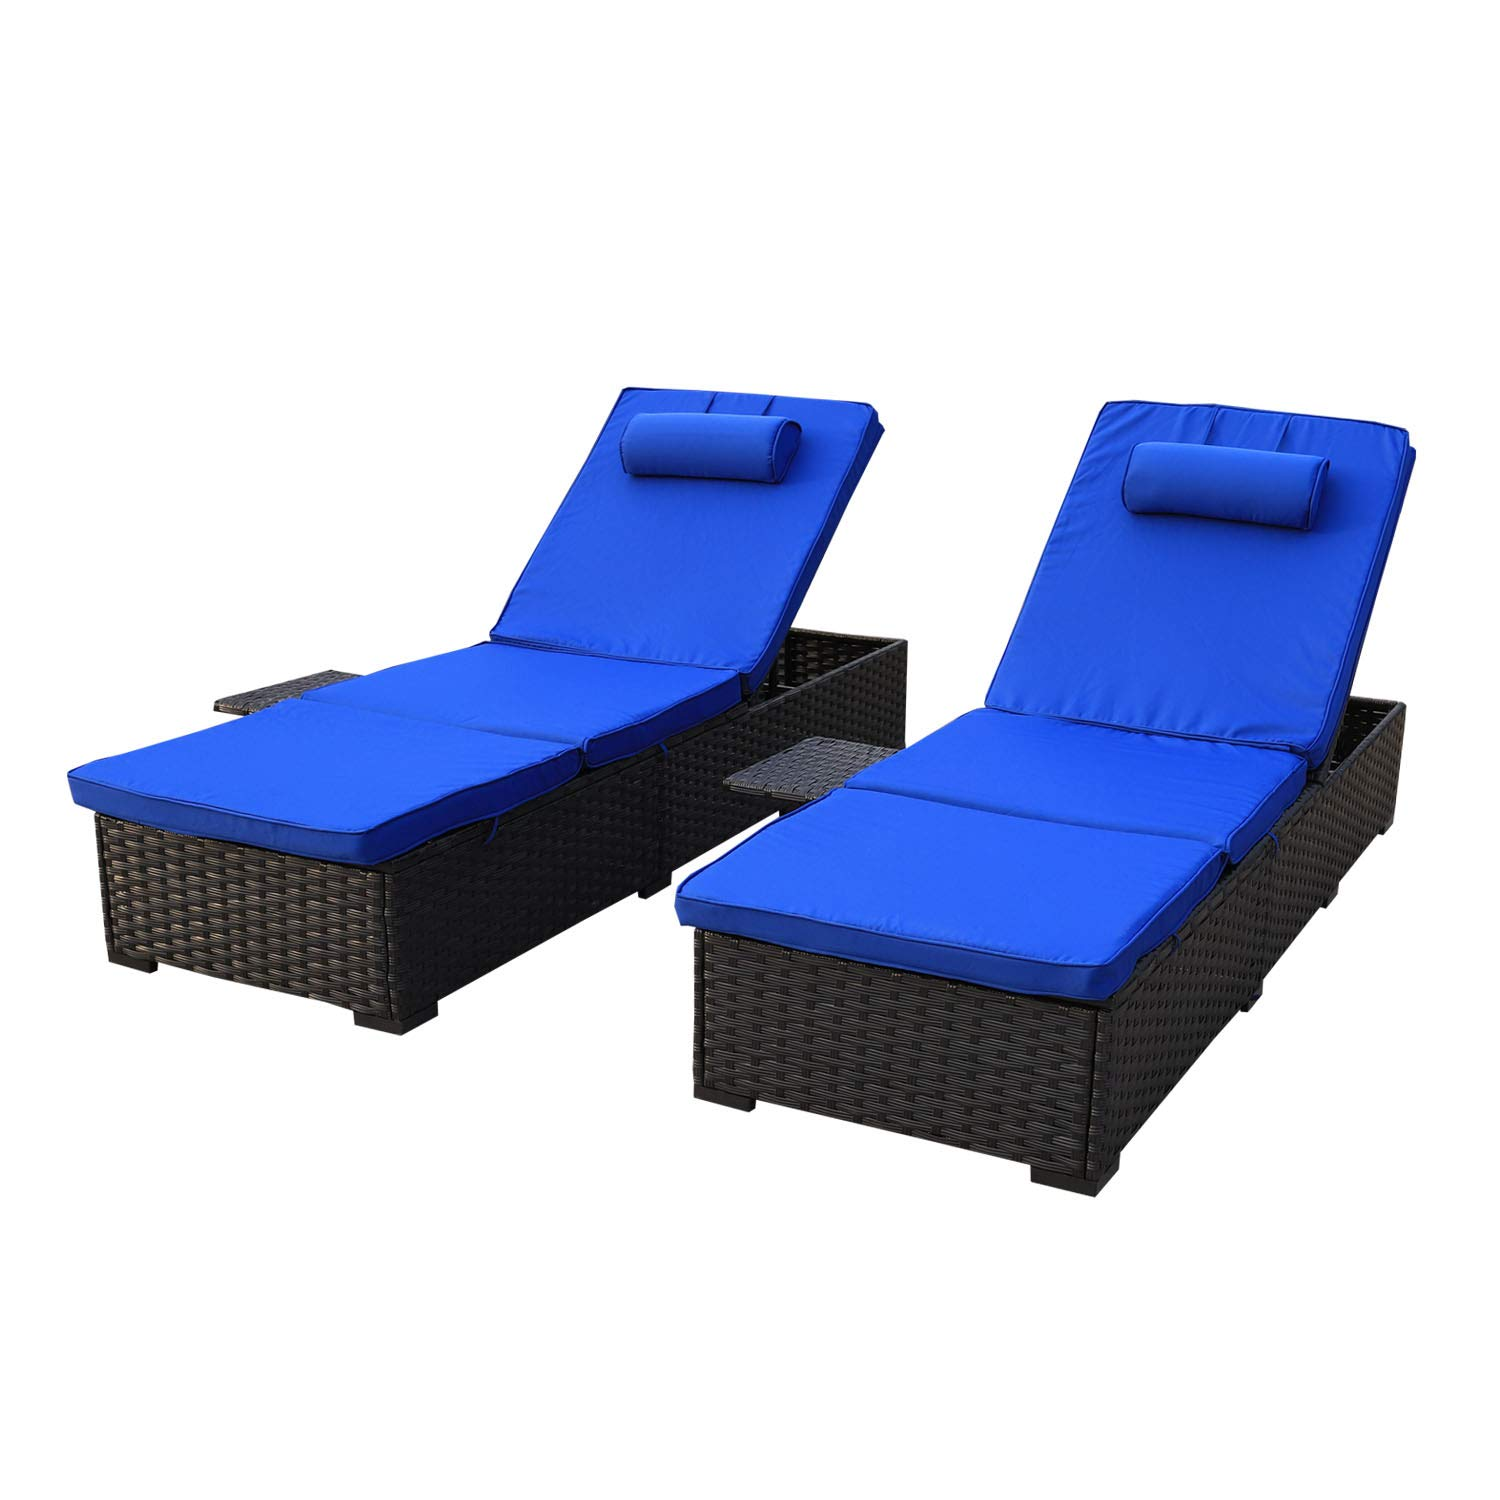 VALITA Outdoor Black Rattan Lounge - 2 Piece Patio PE Wicker Recliner Furniture Set Multi-Angle Adjustable Back and Side Shelf with Royal Blue Cushions